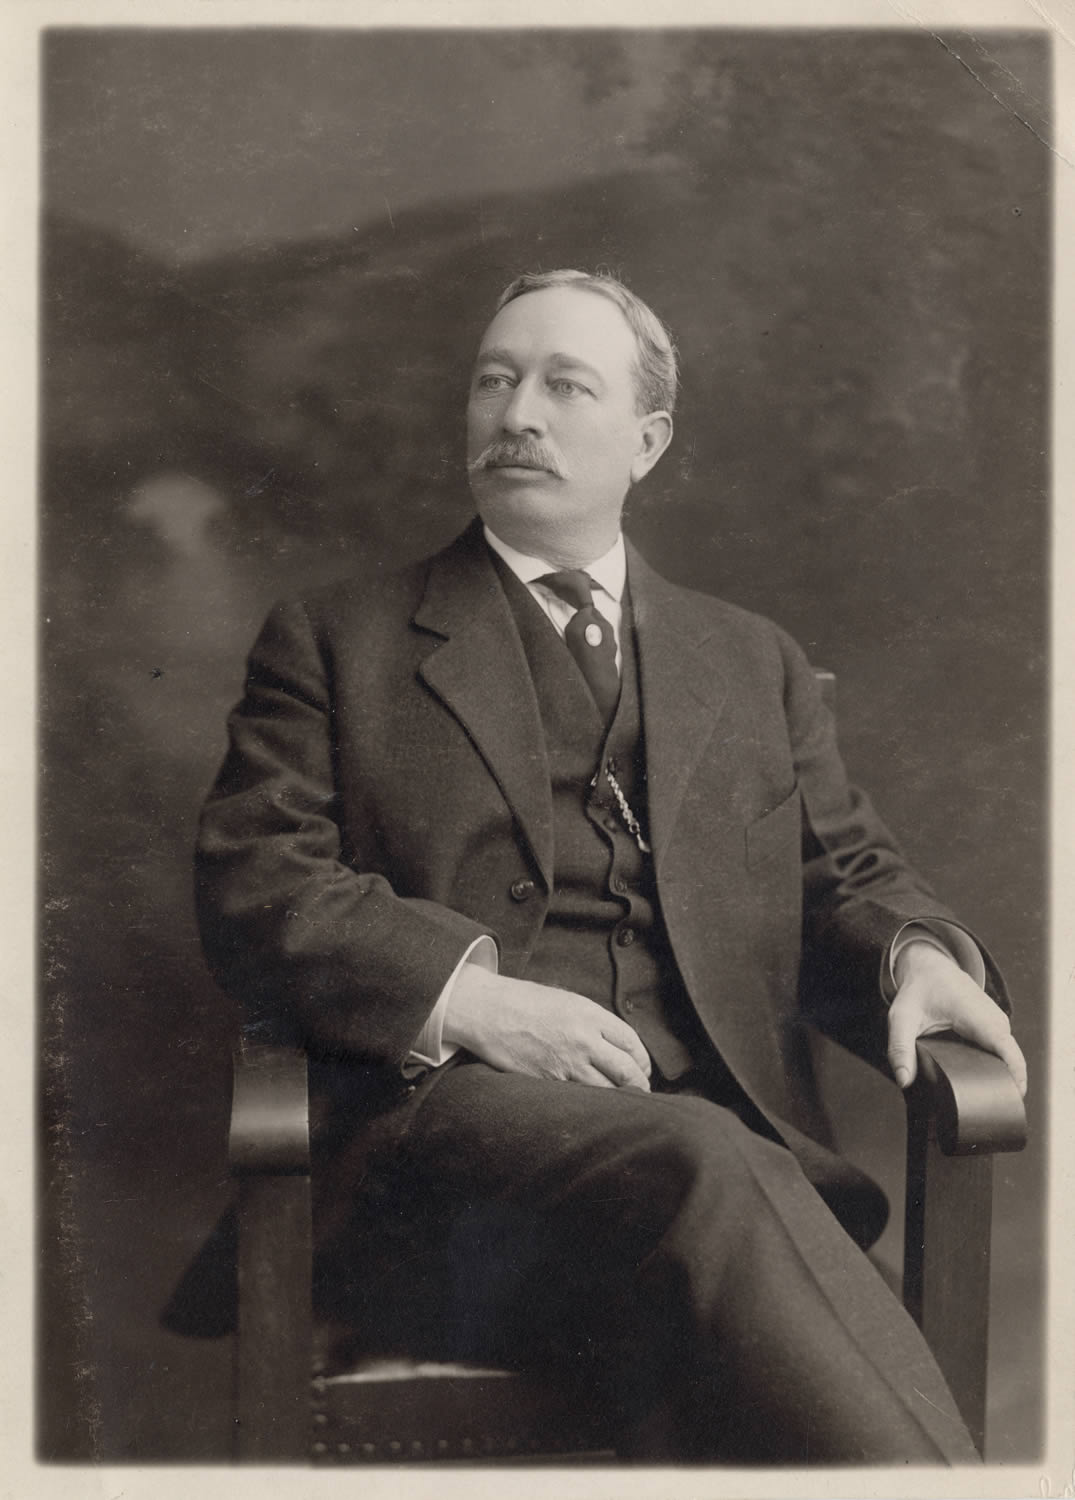 (1899-1917) Photo of James L. Gillis, the fifteenth State Librarian